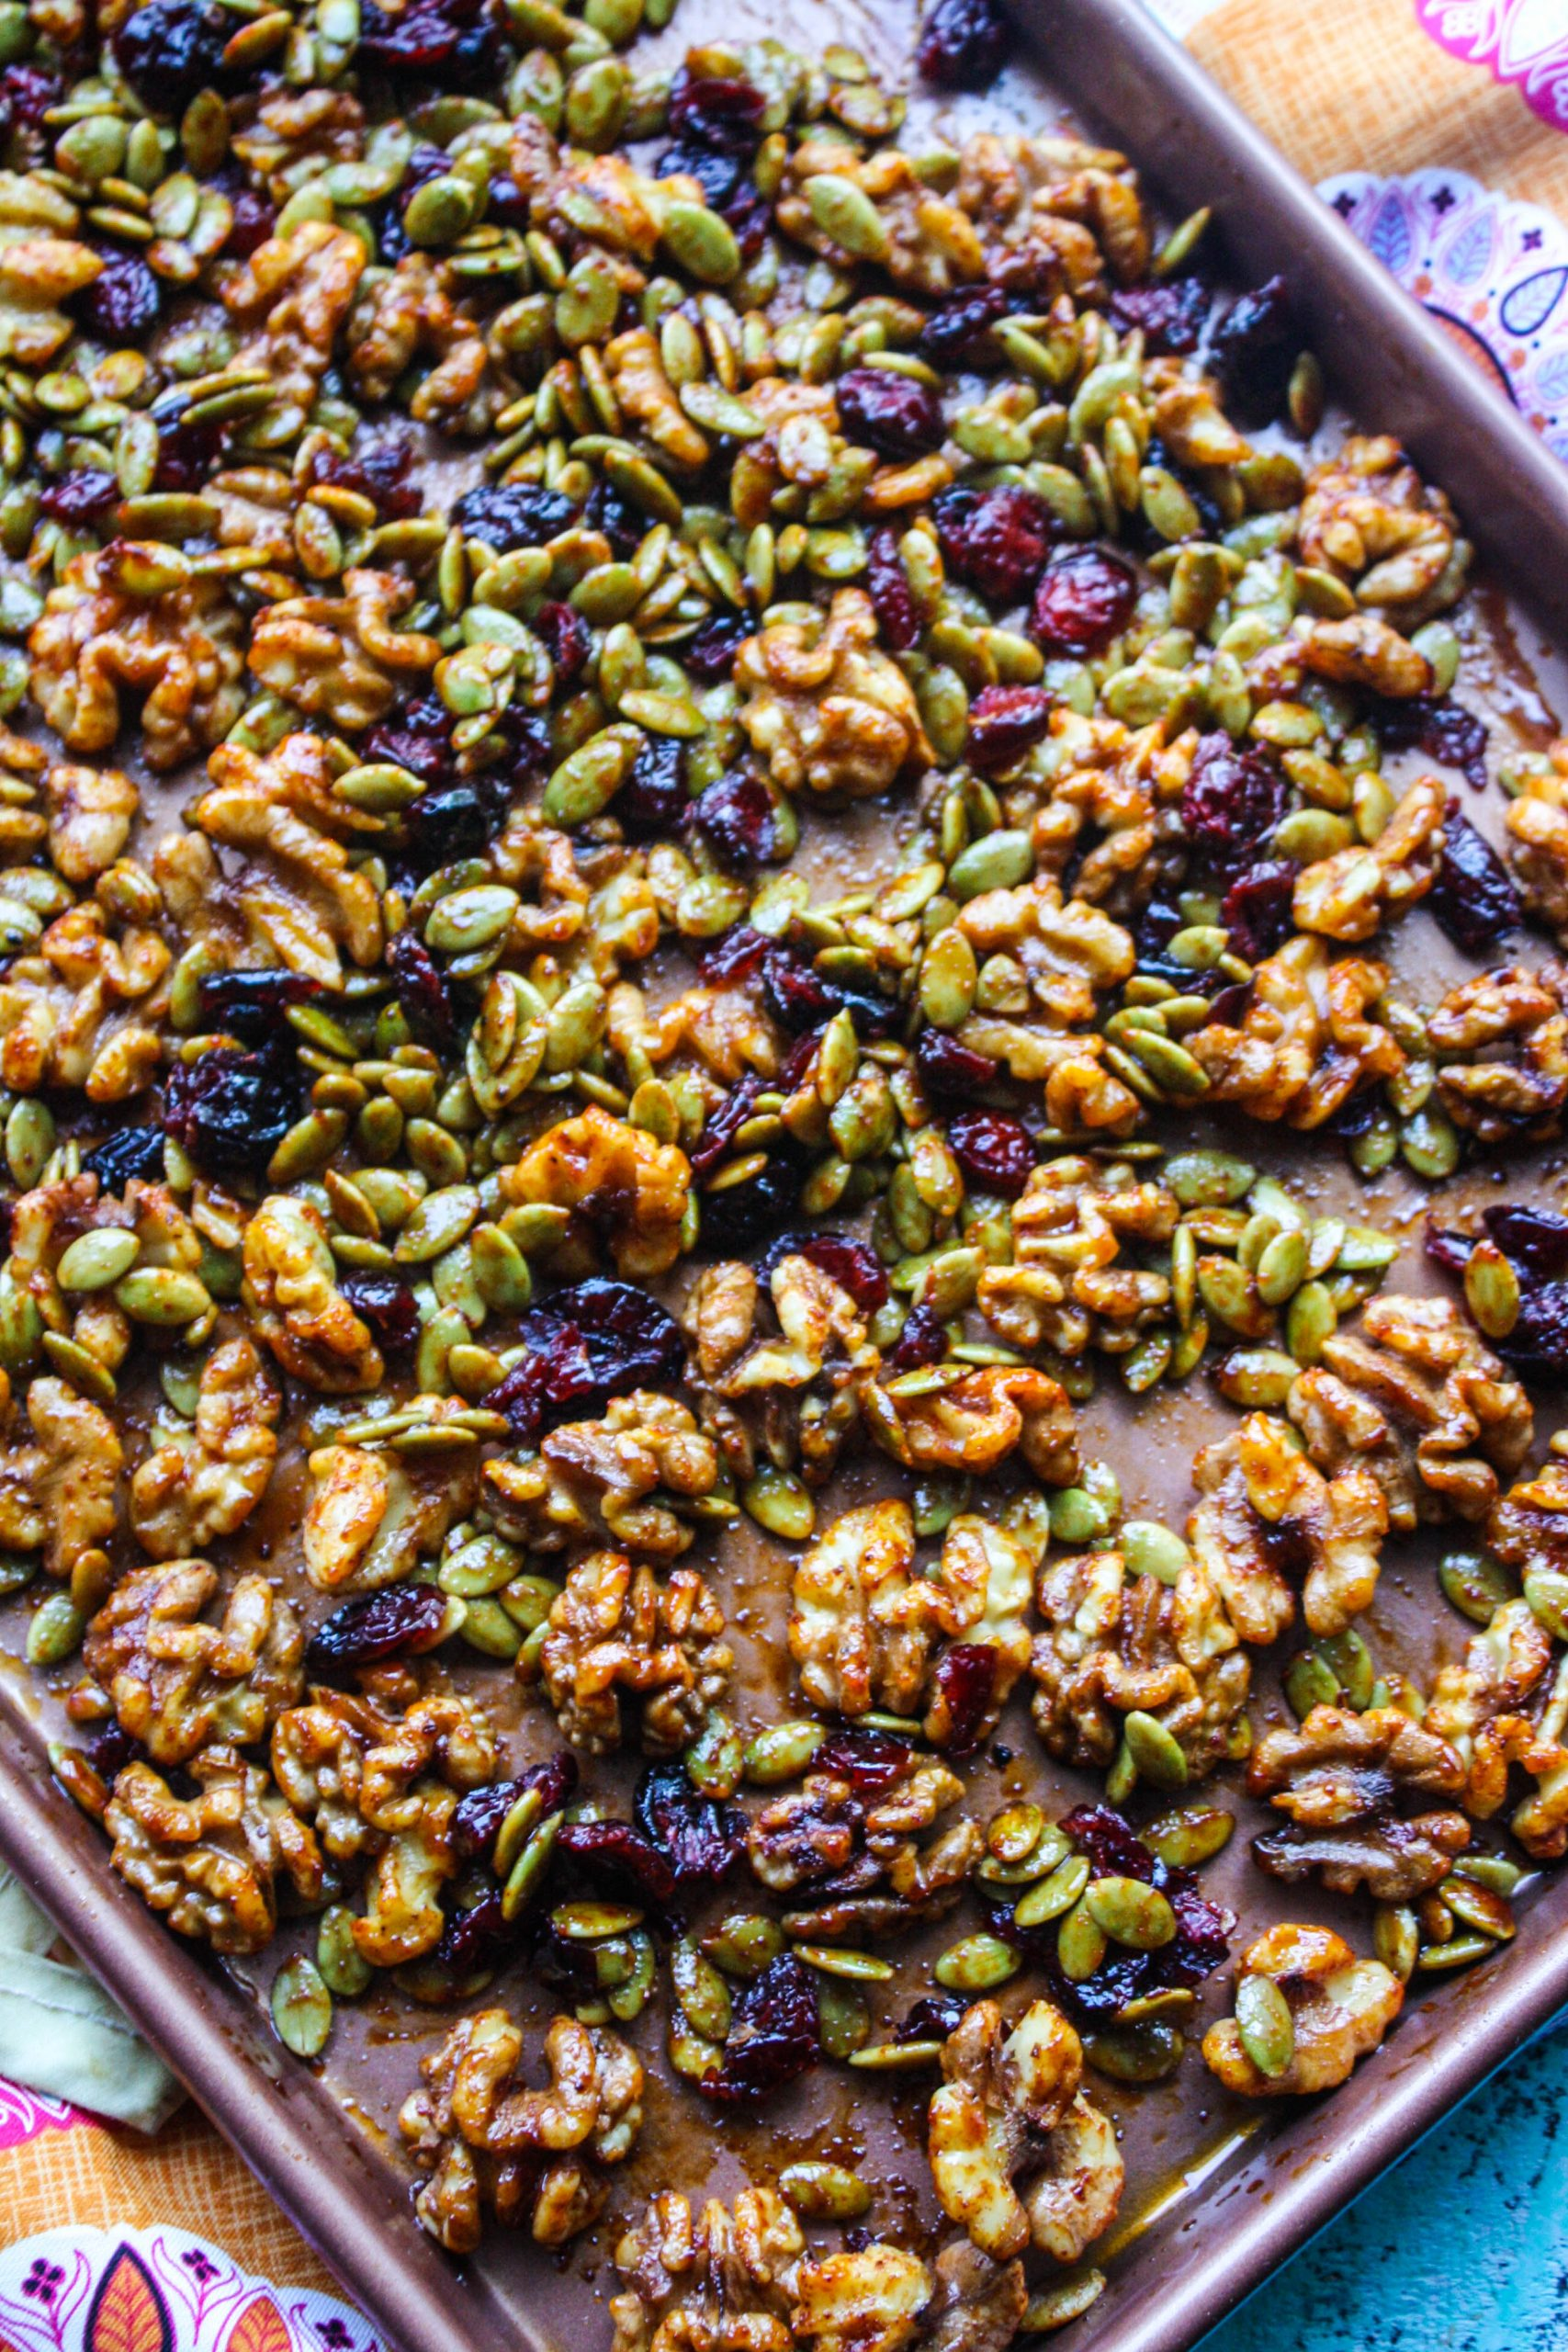 Sweet, Spicy & Citrus Roasted Walnut Mix is a great snack for any time of day (or night)!